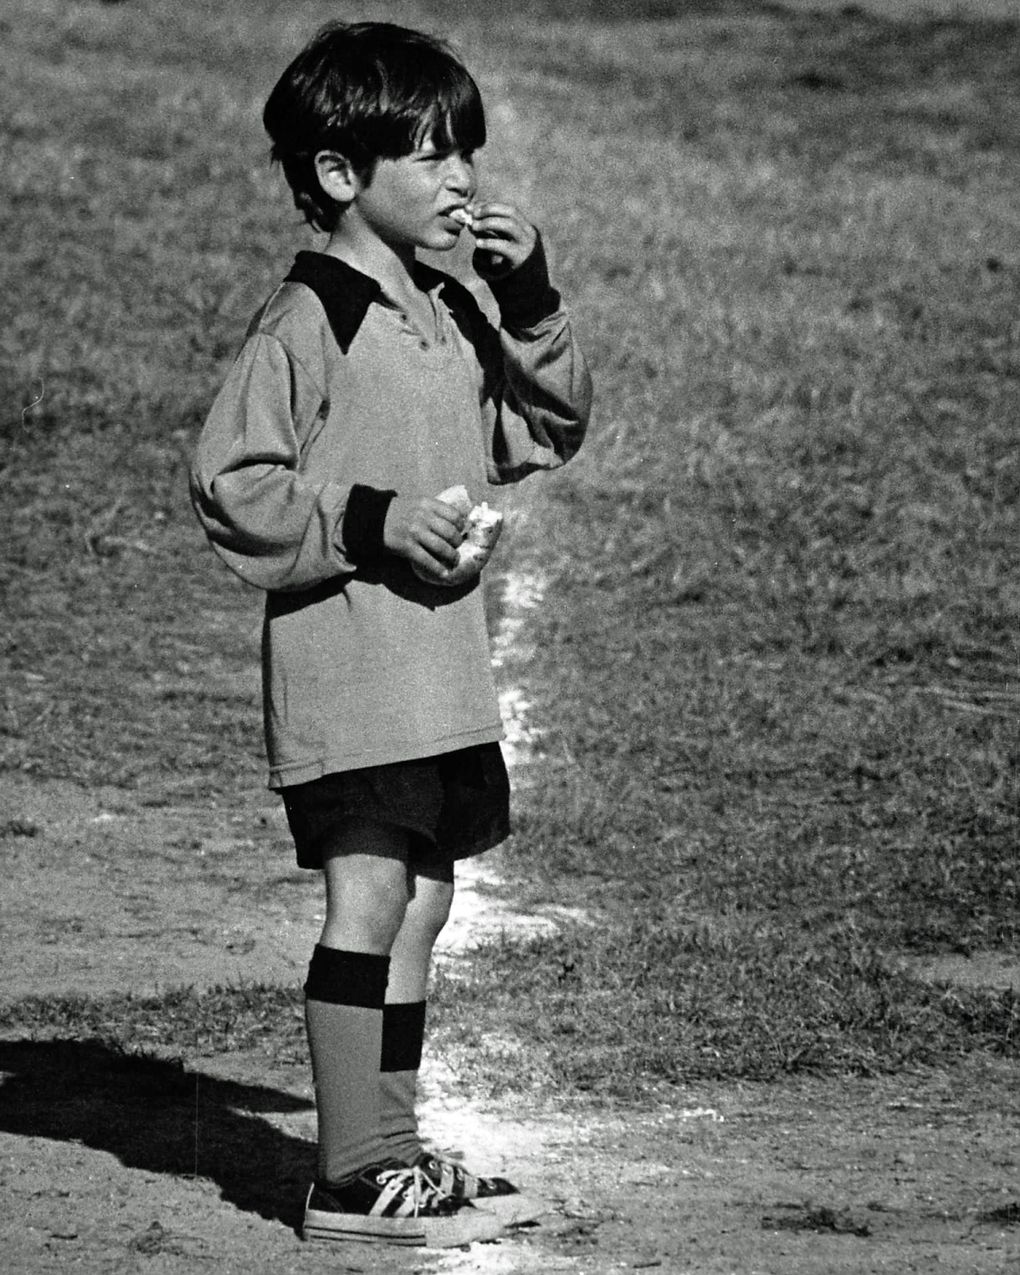 Adrian Hanauer's youth soccer career started in Bellevue and continued on Mercer Island. (Photo courtesy of Adrian Hanauer)